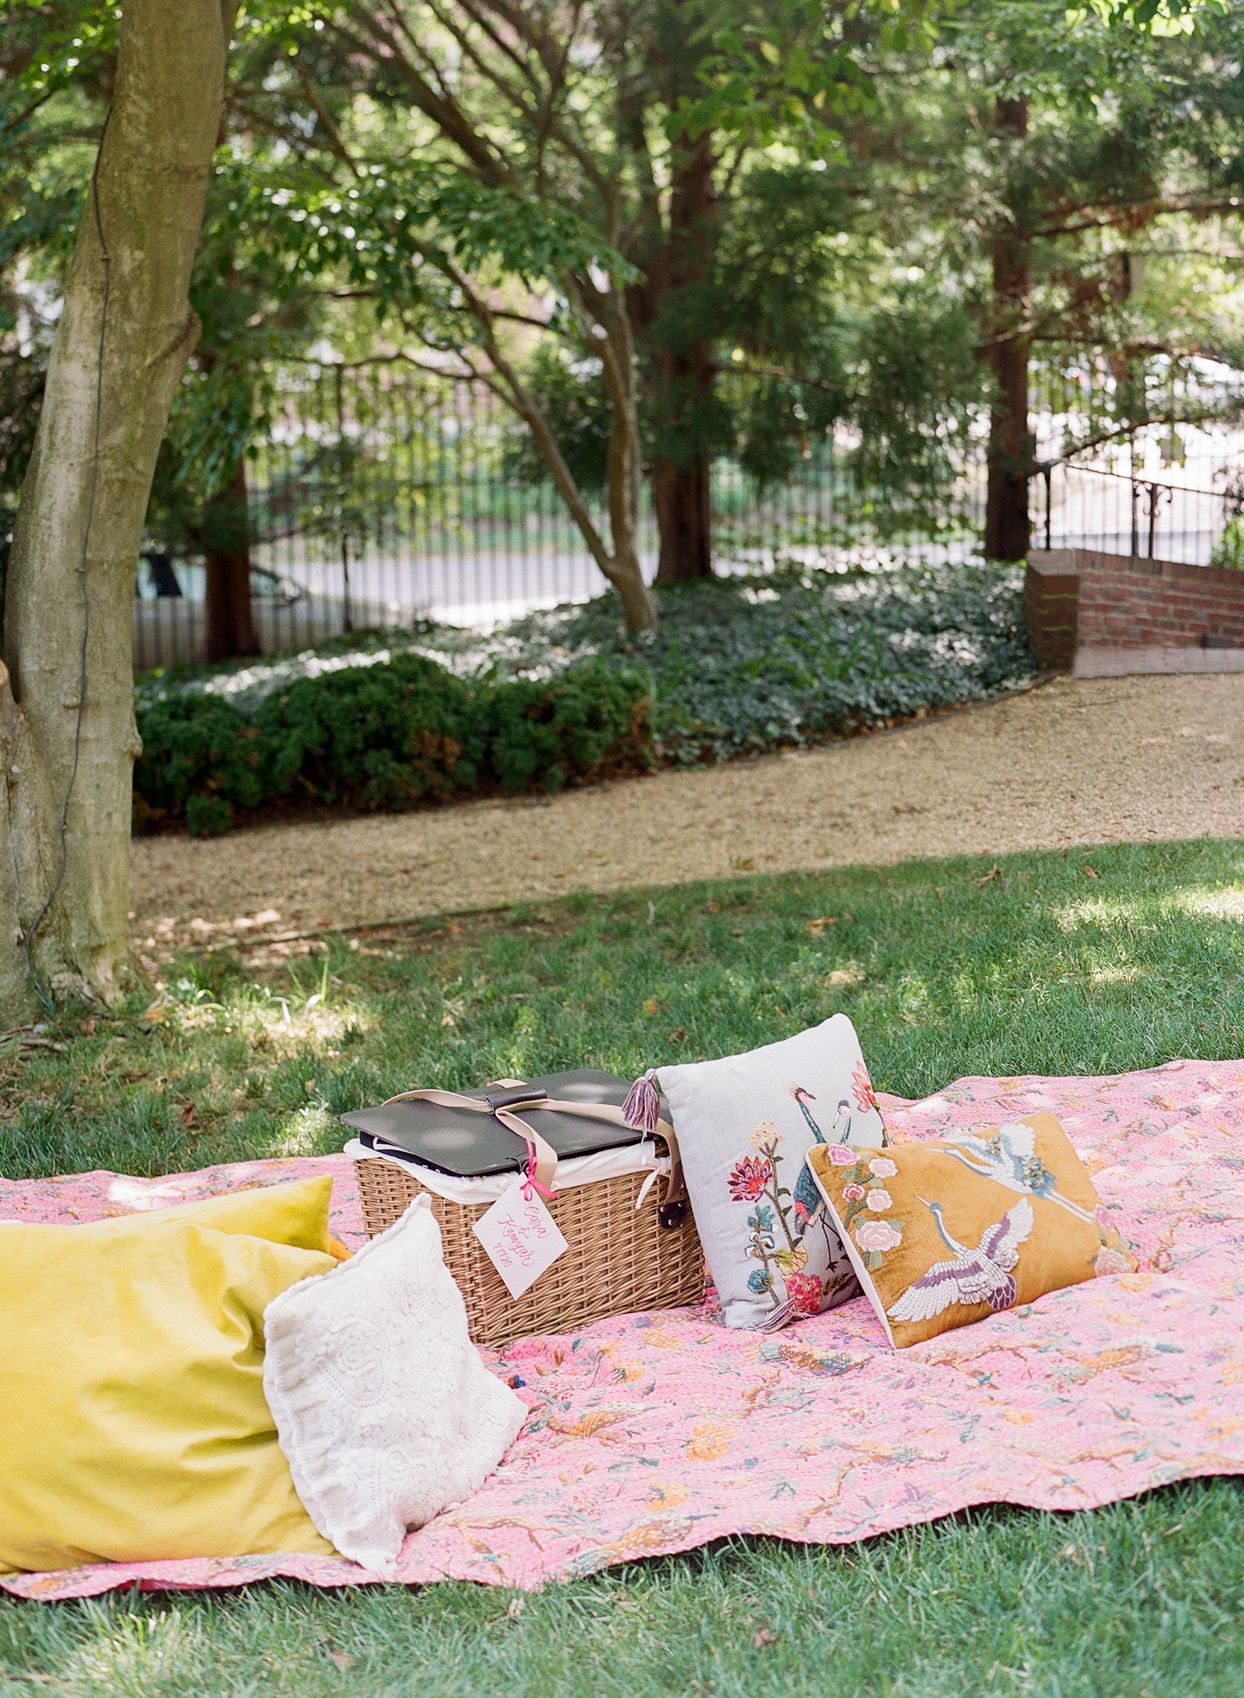 wedding picnic pink quilt and colorful pillows set up in garden